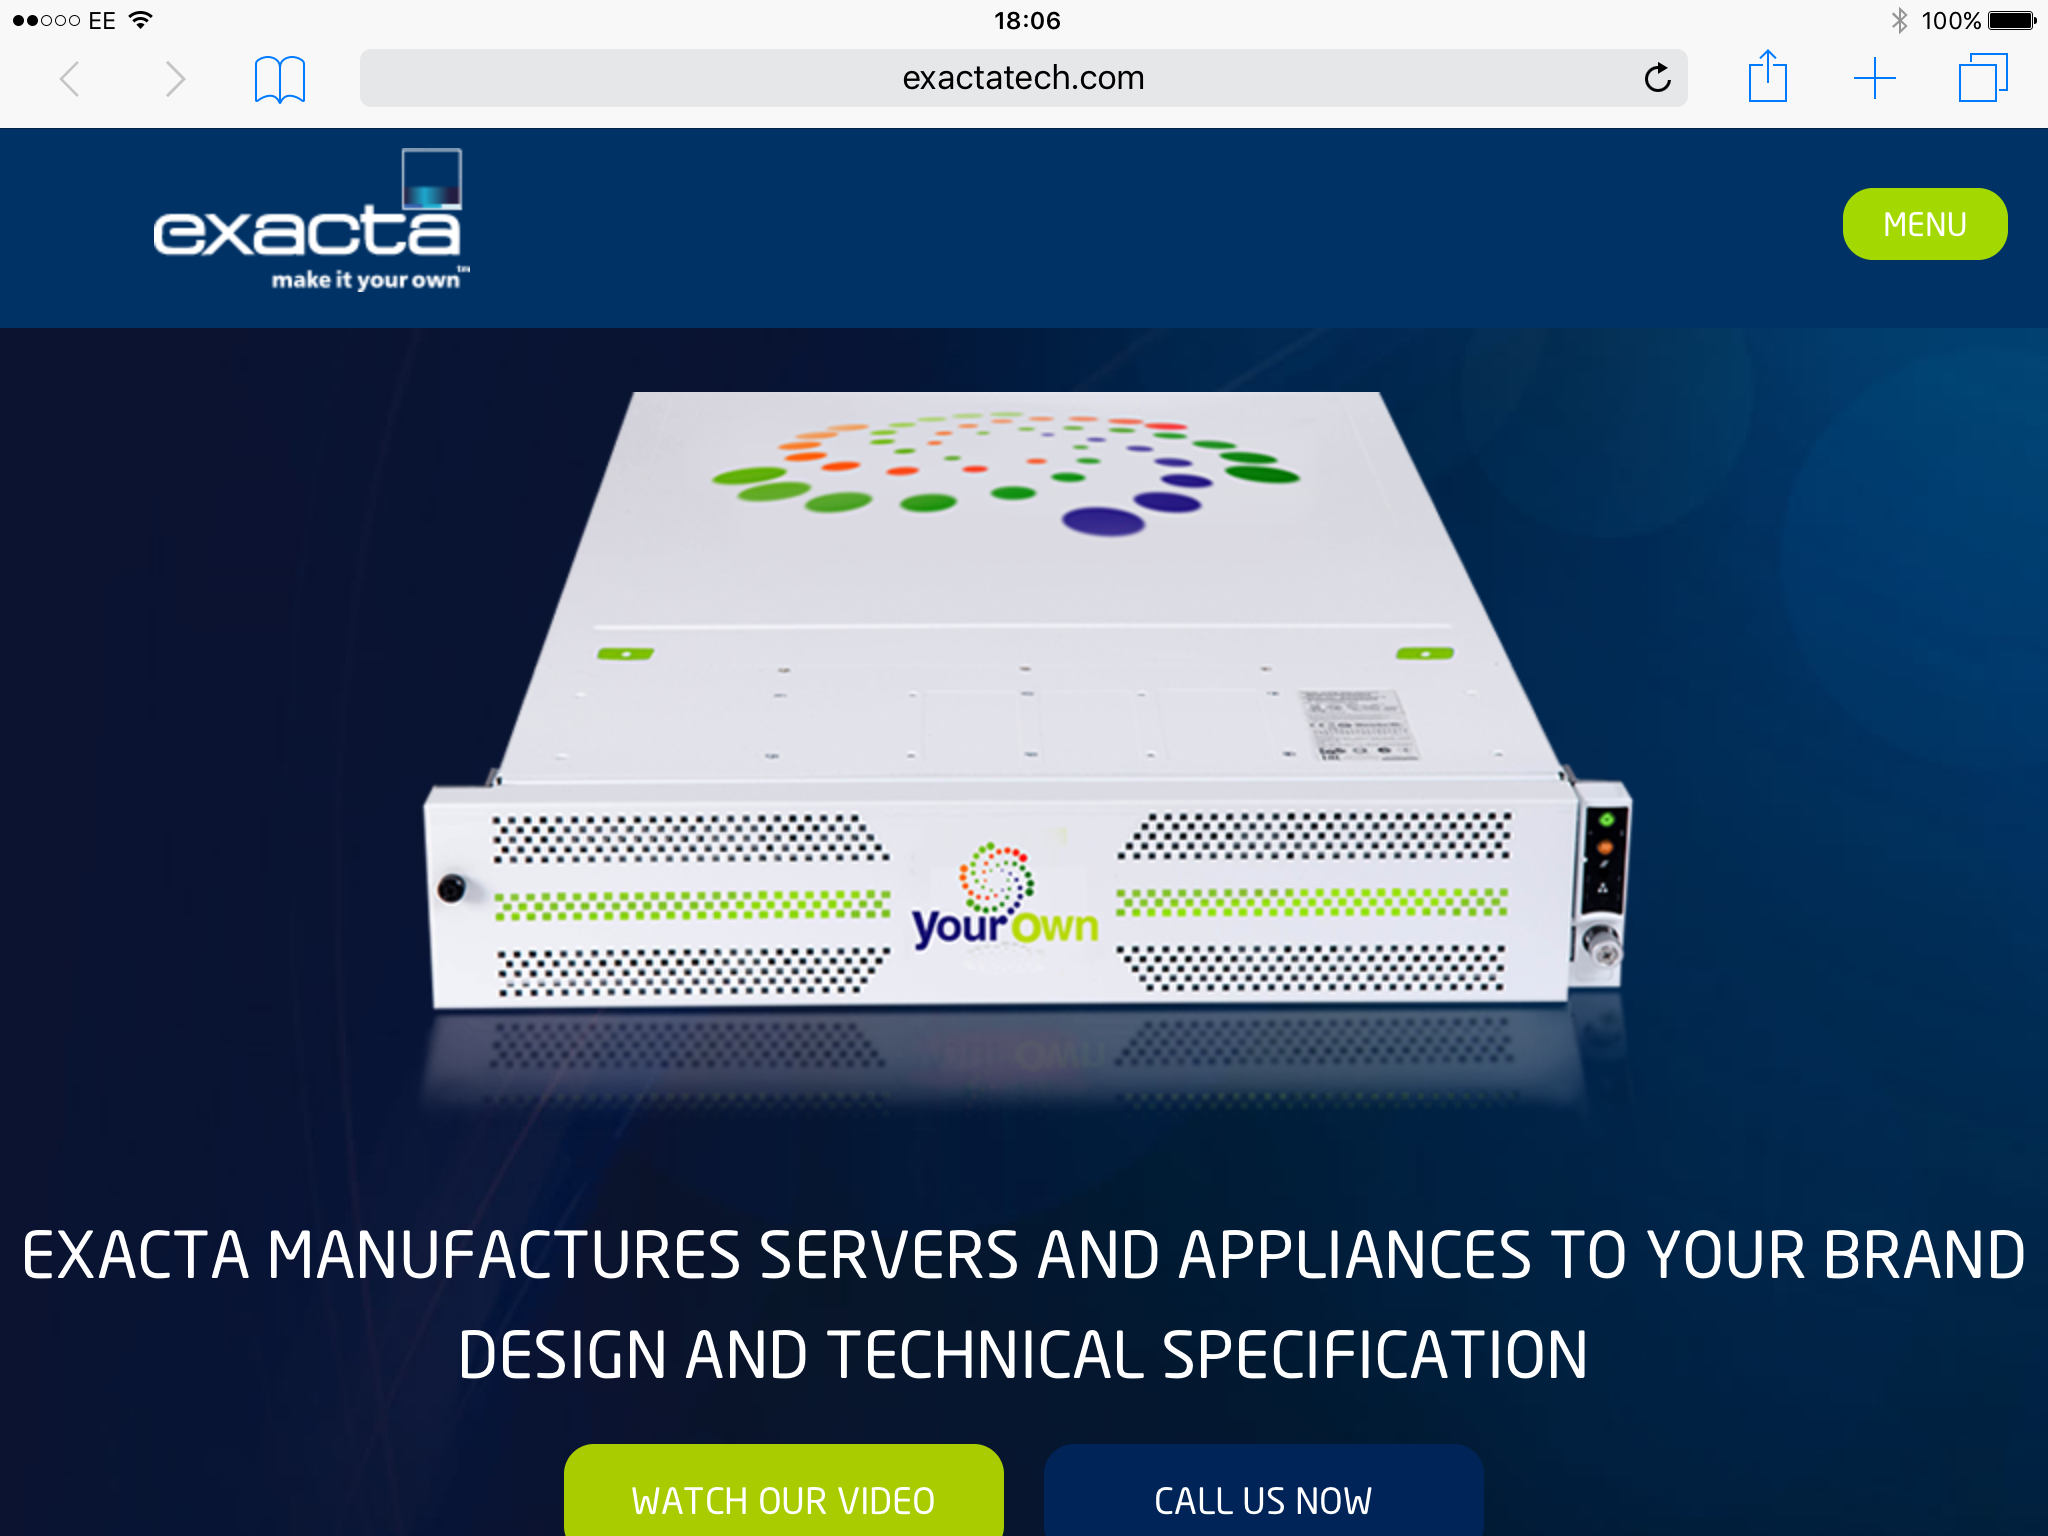 Awesome new website launched for Exacta Technologies